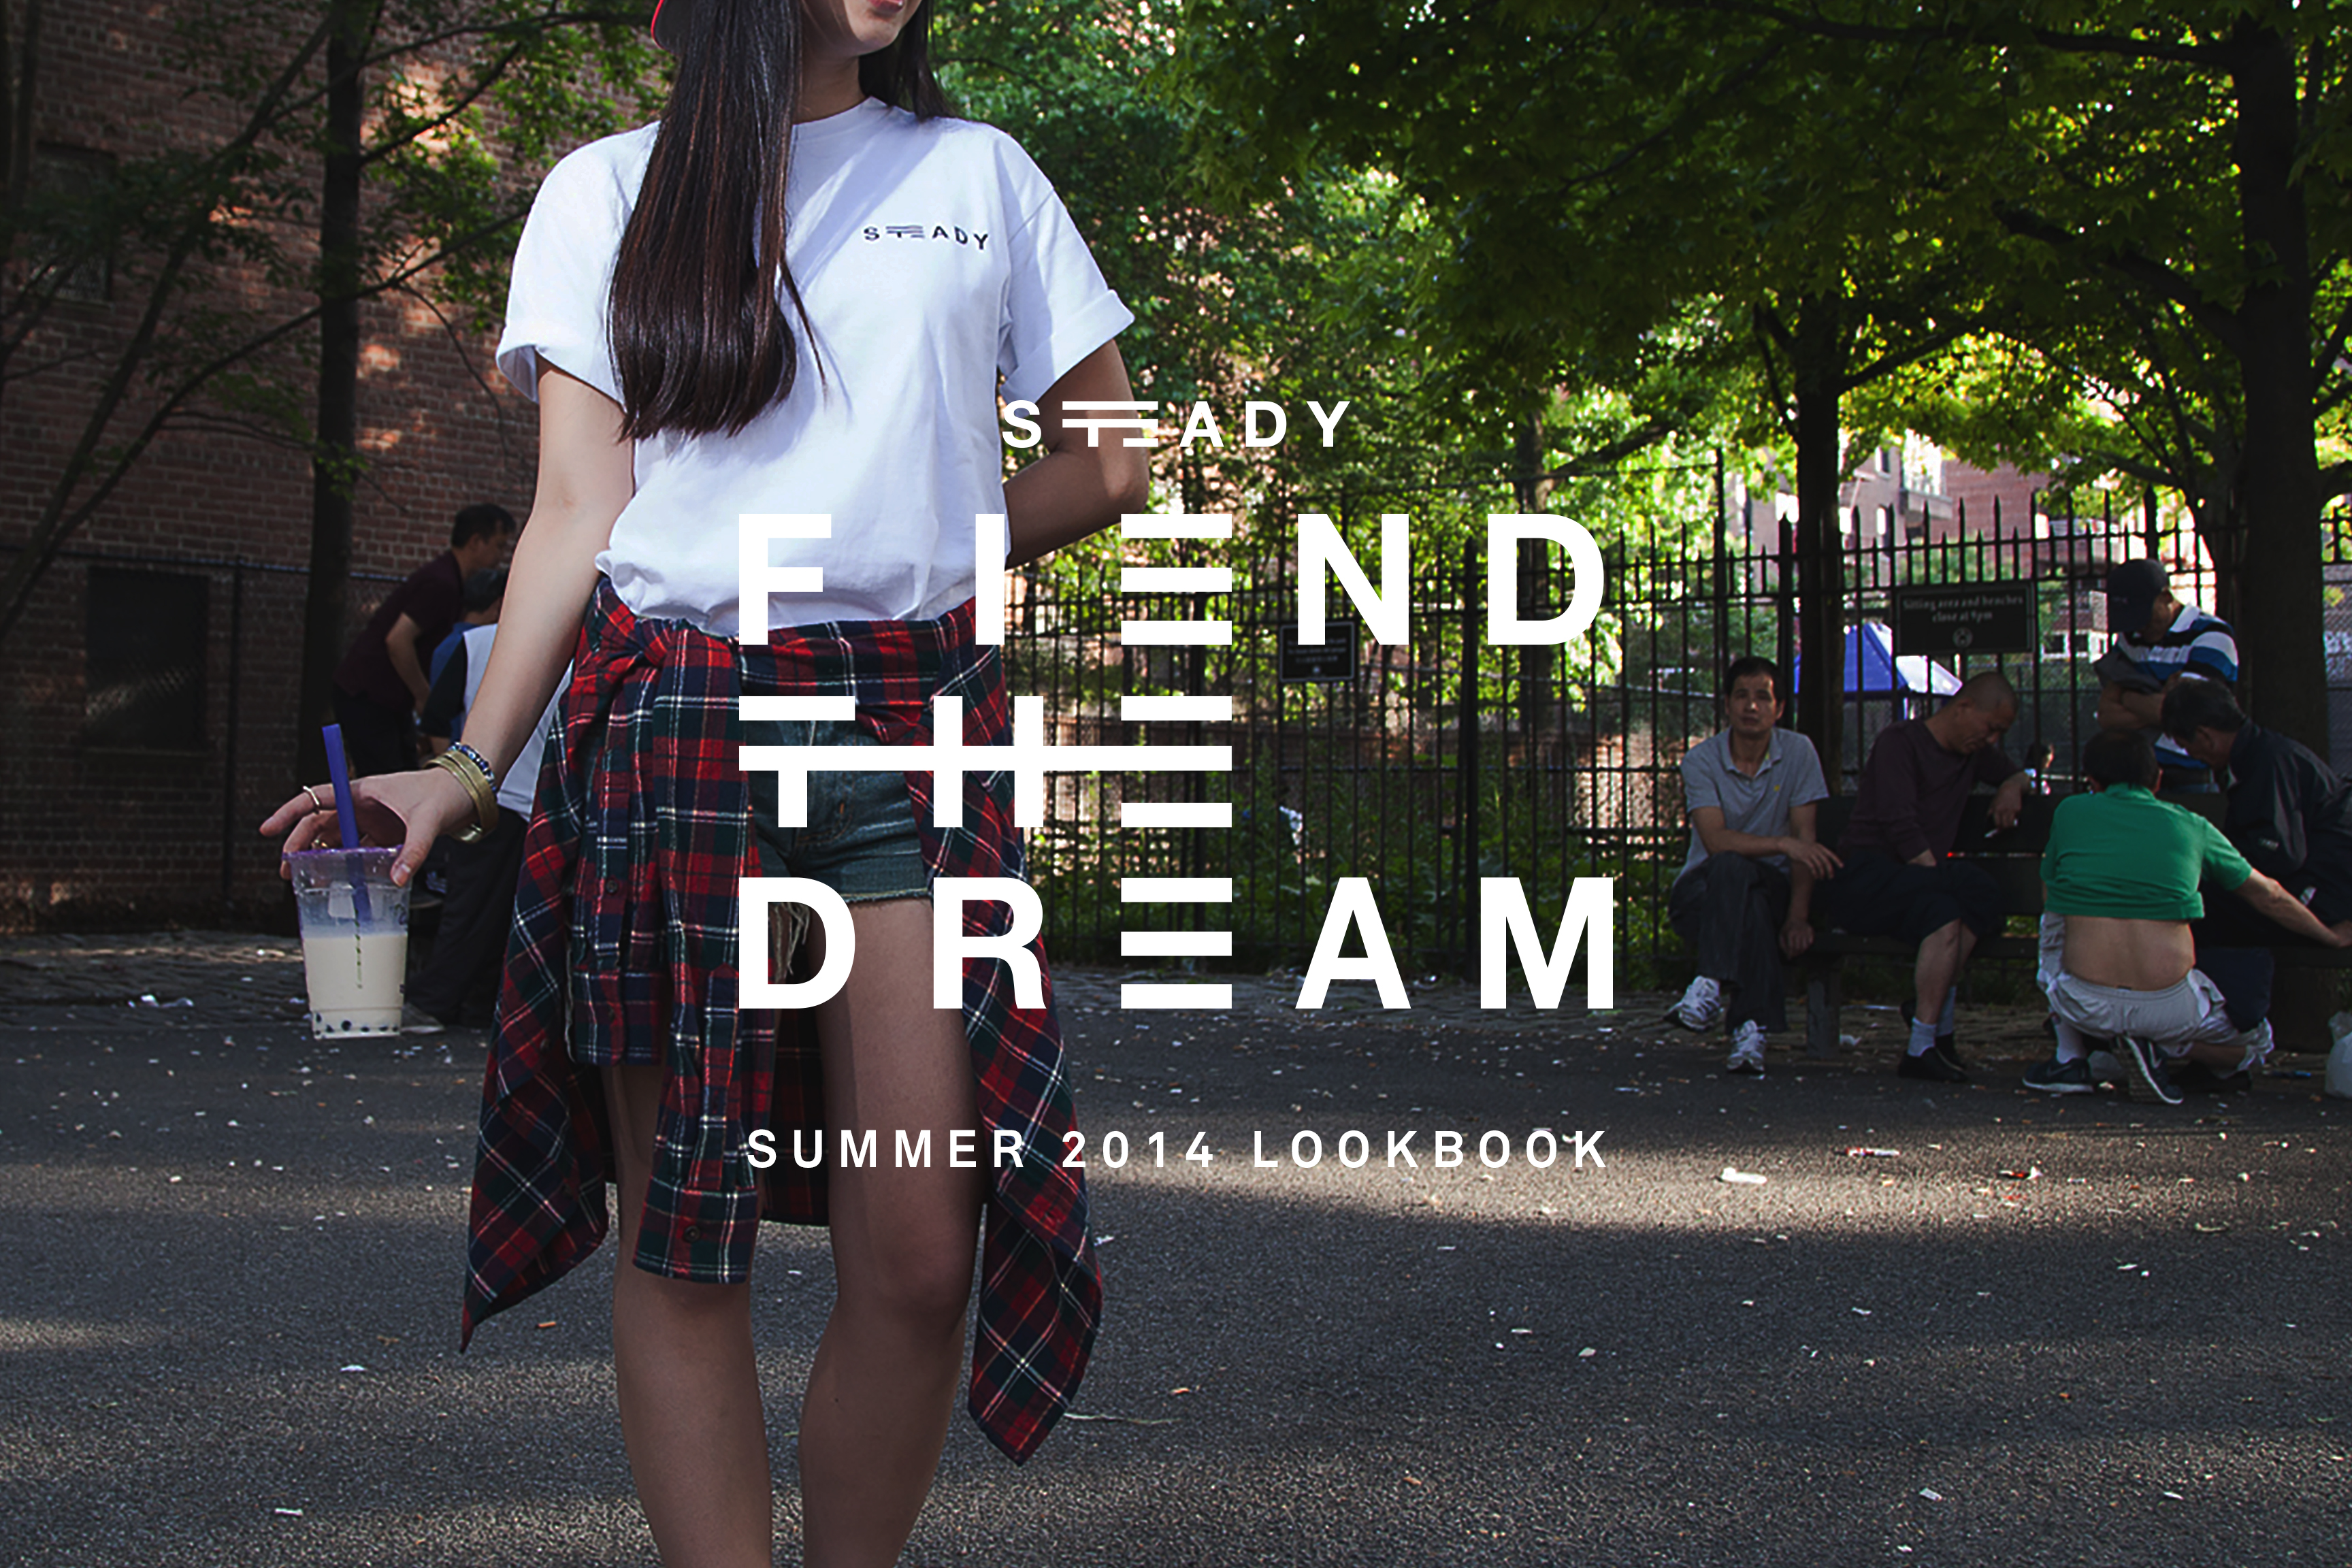 STEADY FIEND THE DREAM SUMMER 2014 LOOKBOOK